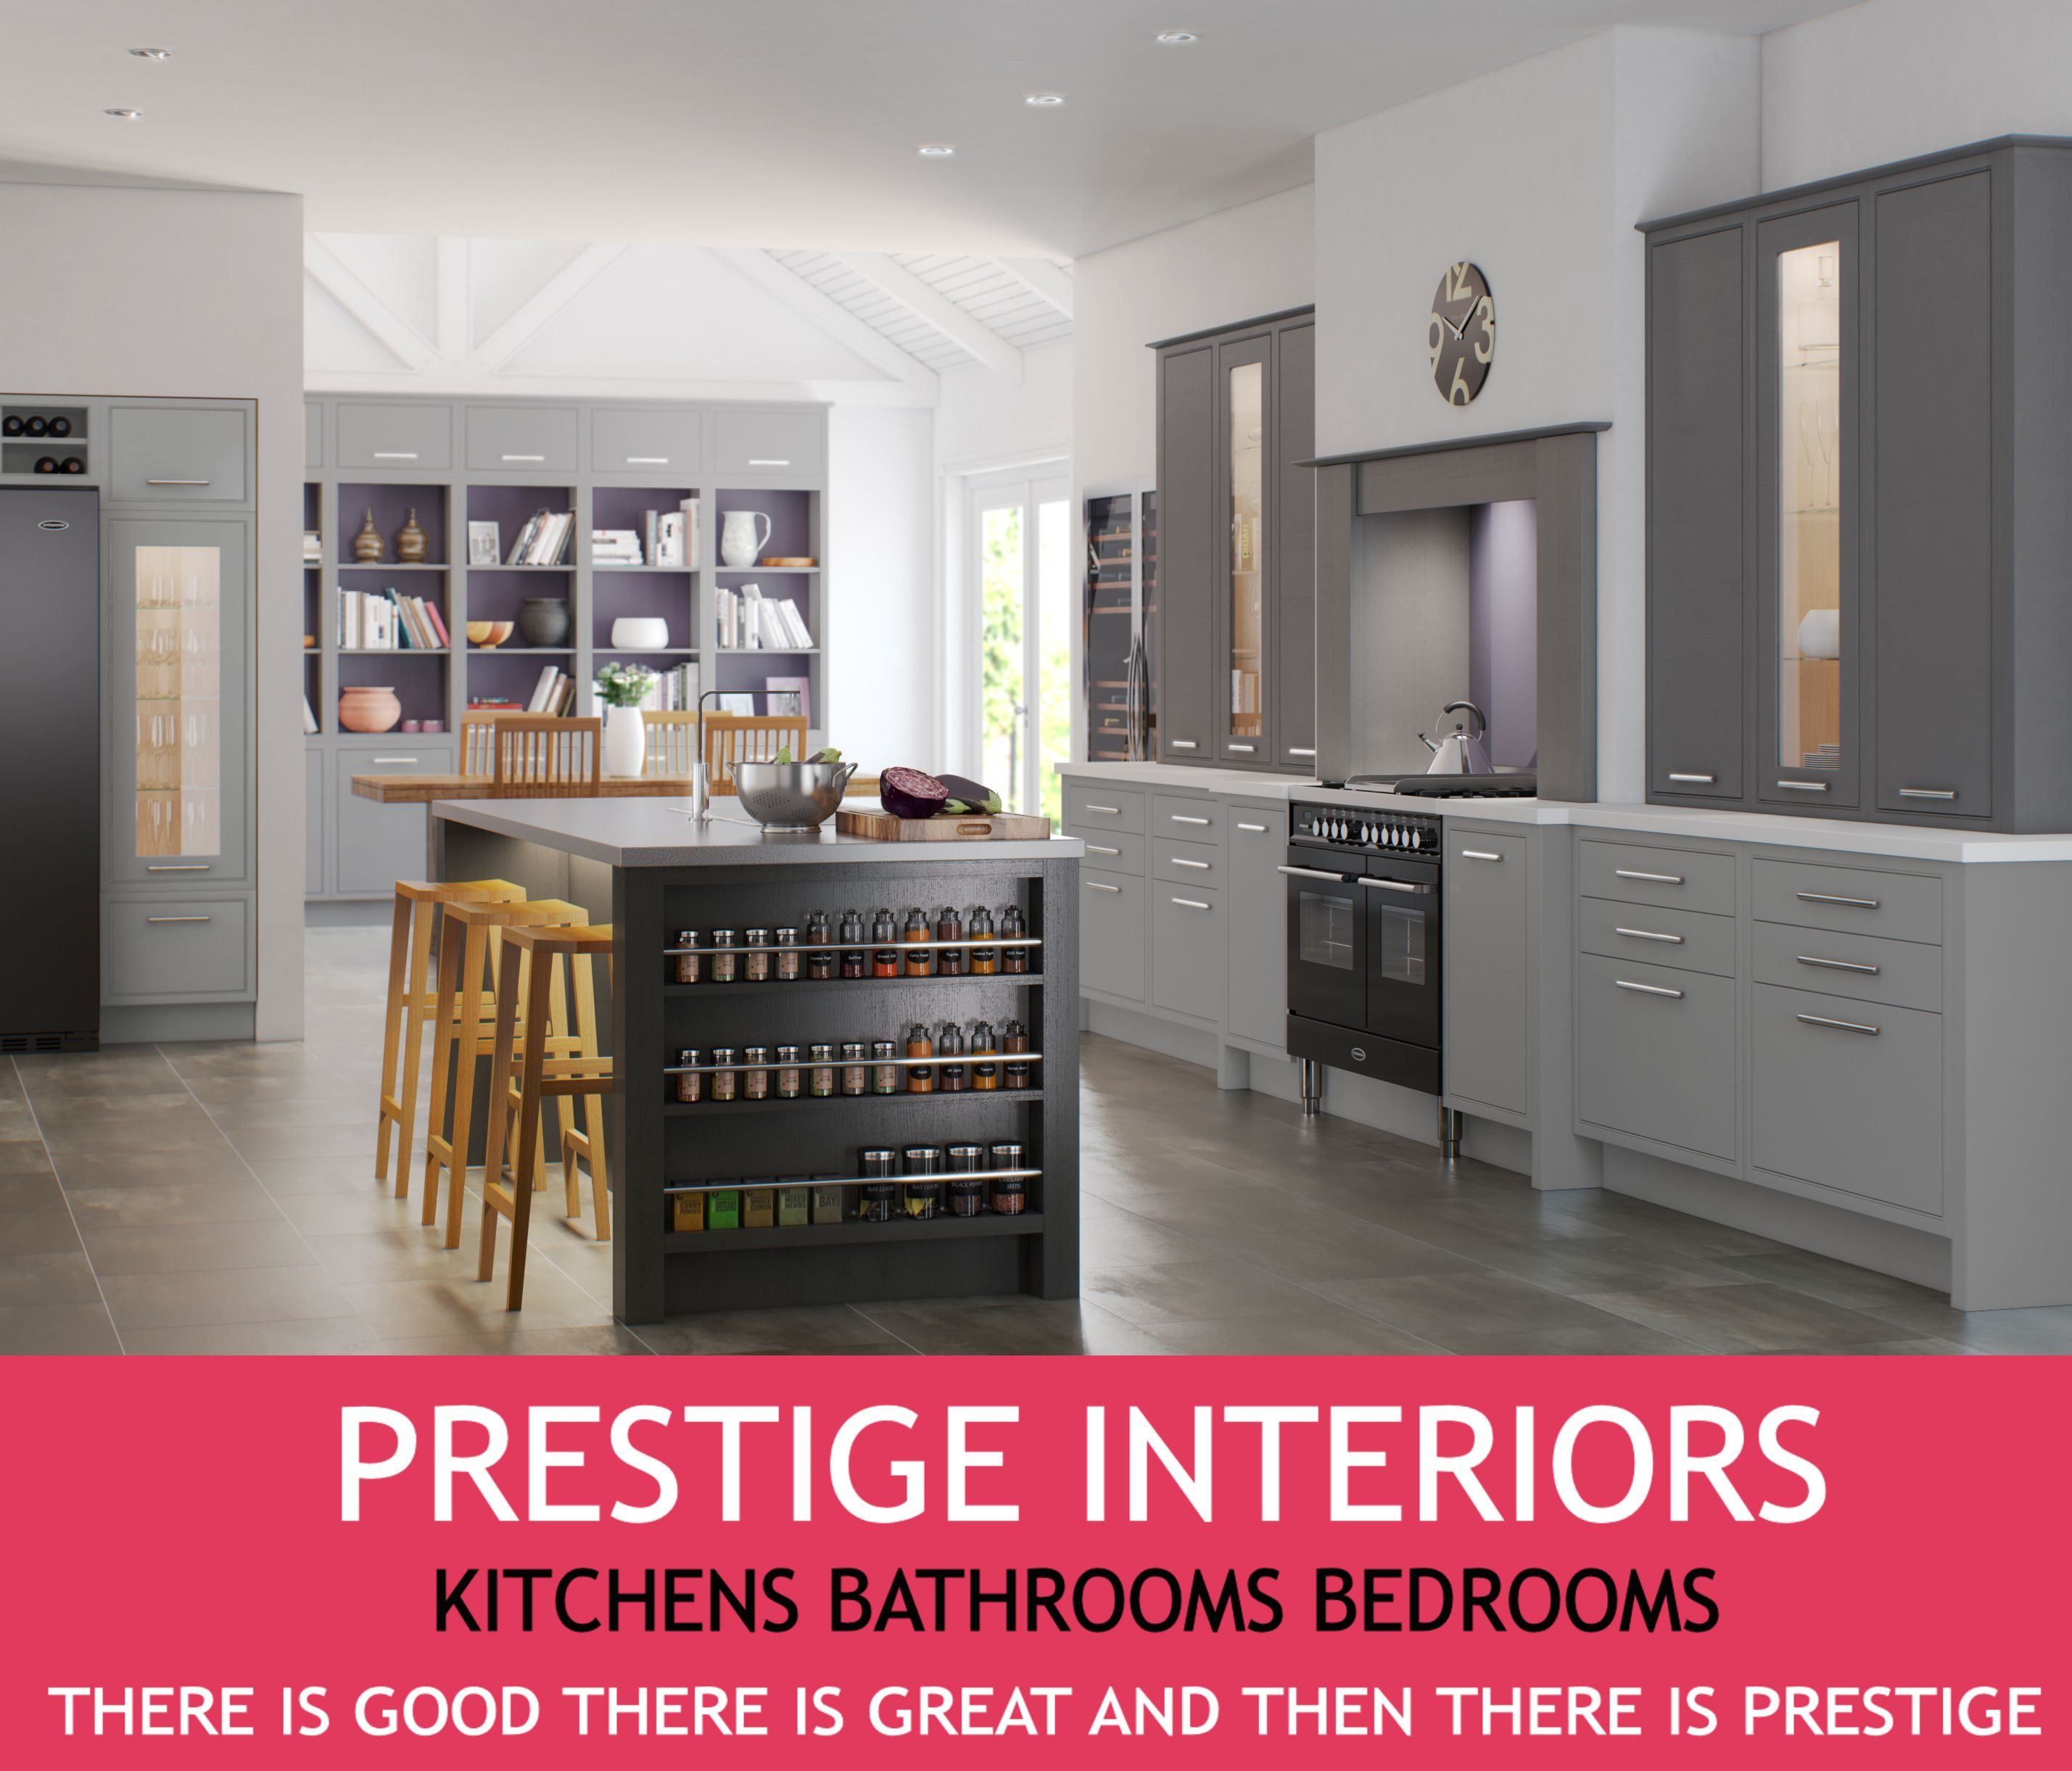 Prestige Kitchen Cabinets: The Leading #Kitchen Showroom In East